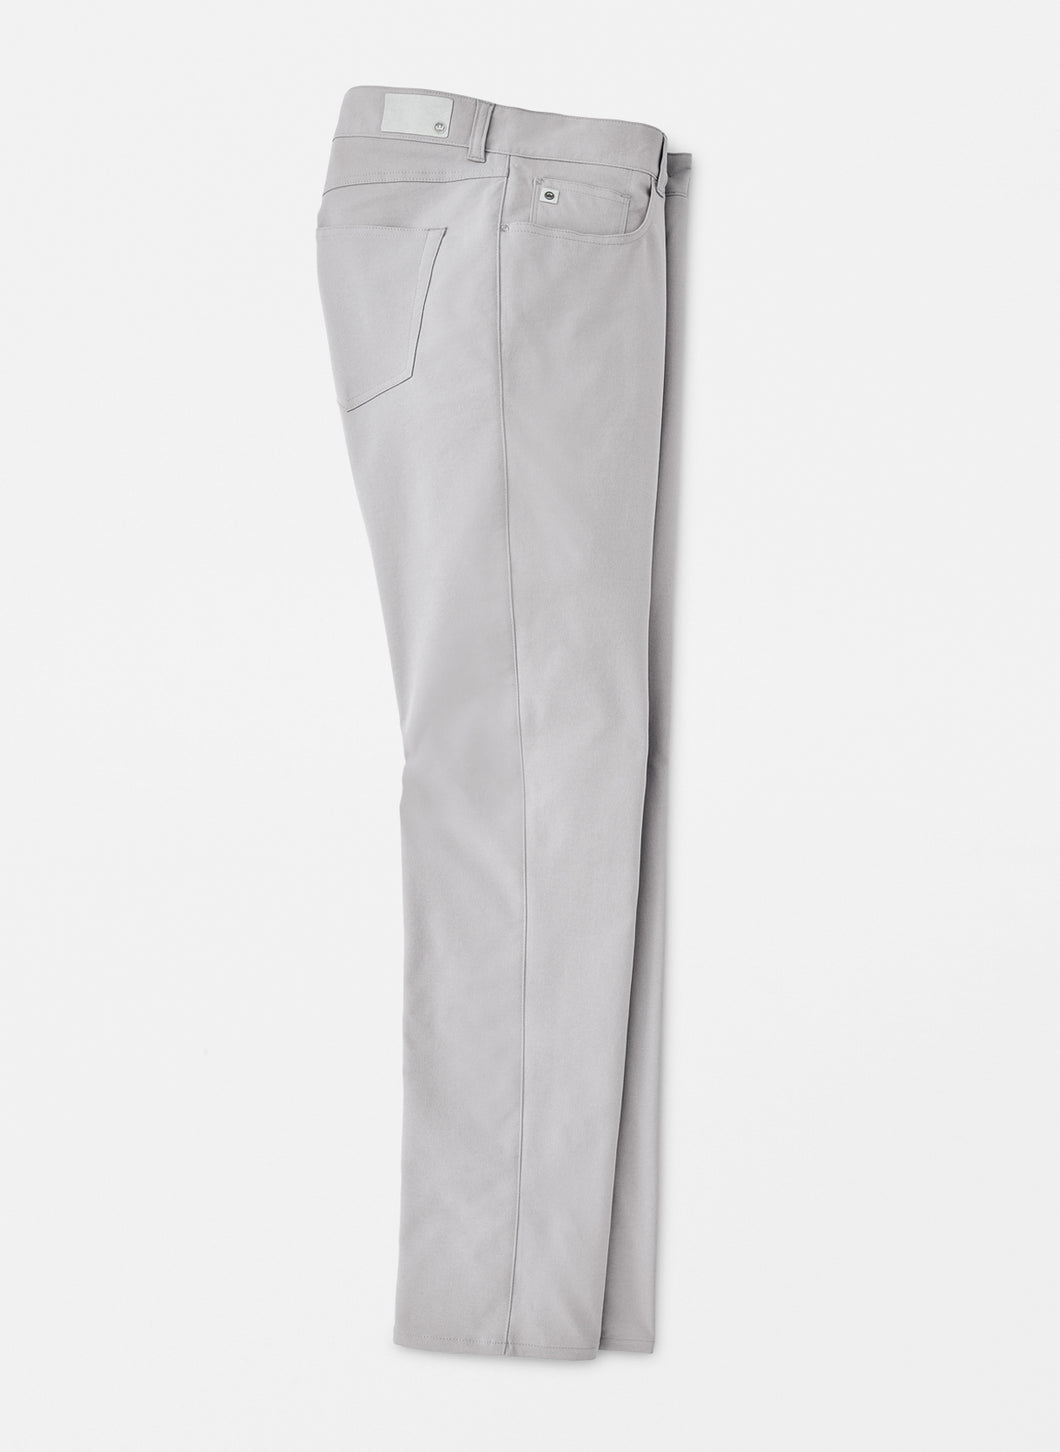 Peter Millar eb66 Performance Five-Pocket Pant in Gale Grey